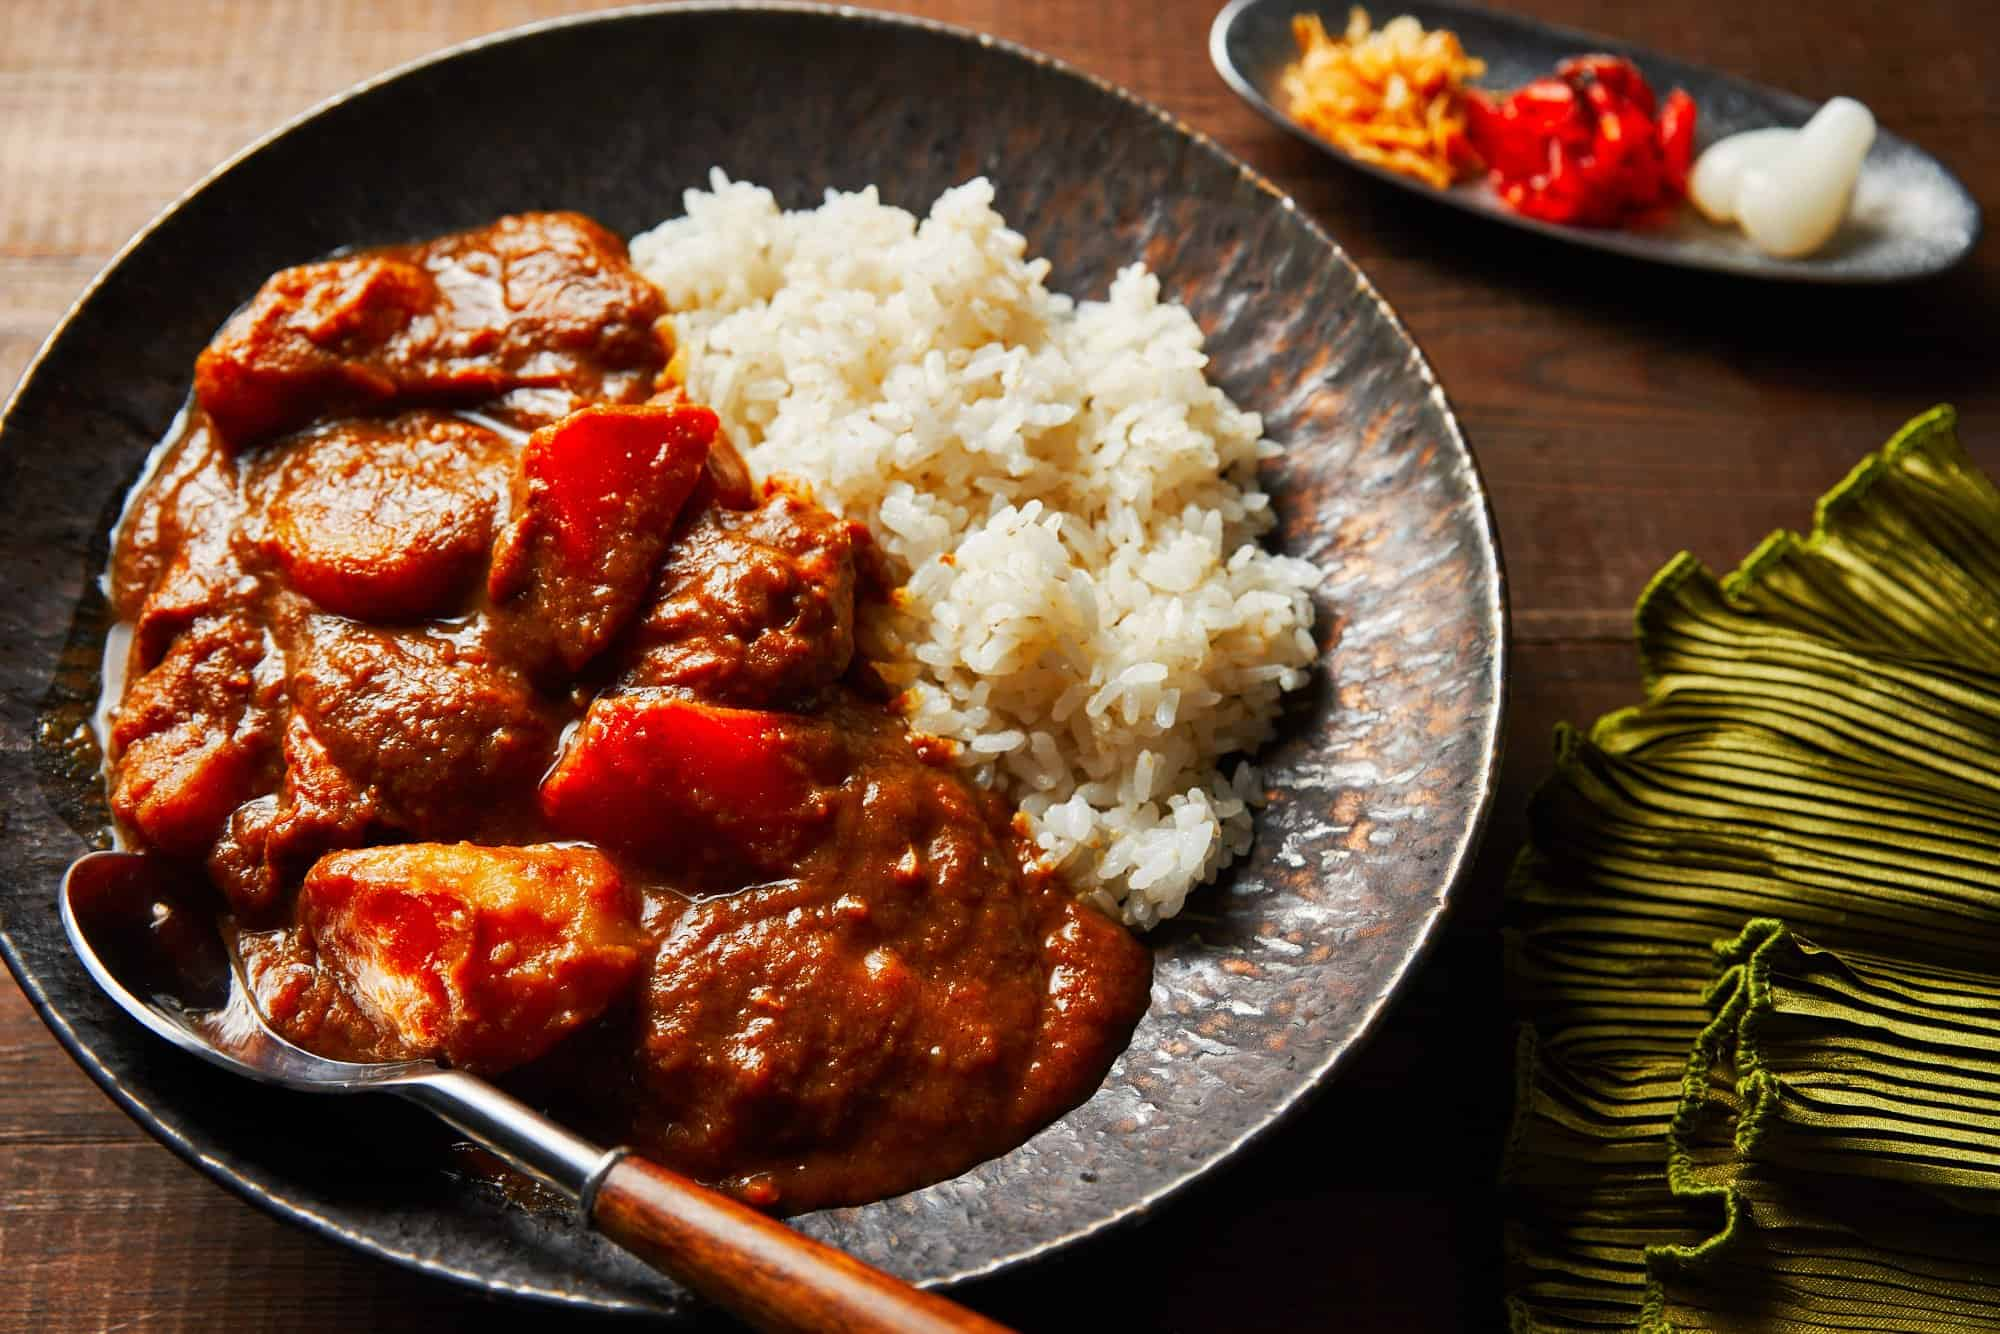 Caramelized vegetables and fruit give this Japanese Curry from Scratch it's hearty thickness and savory sweet taste.